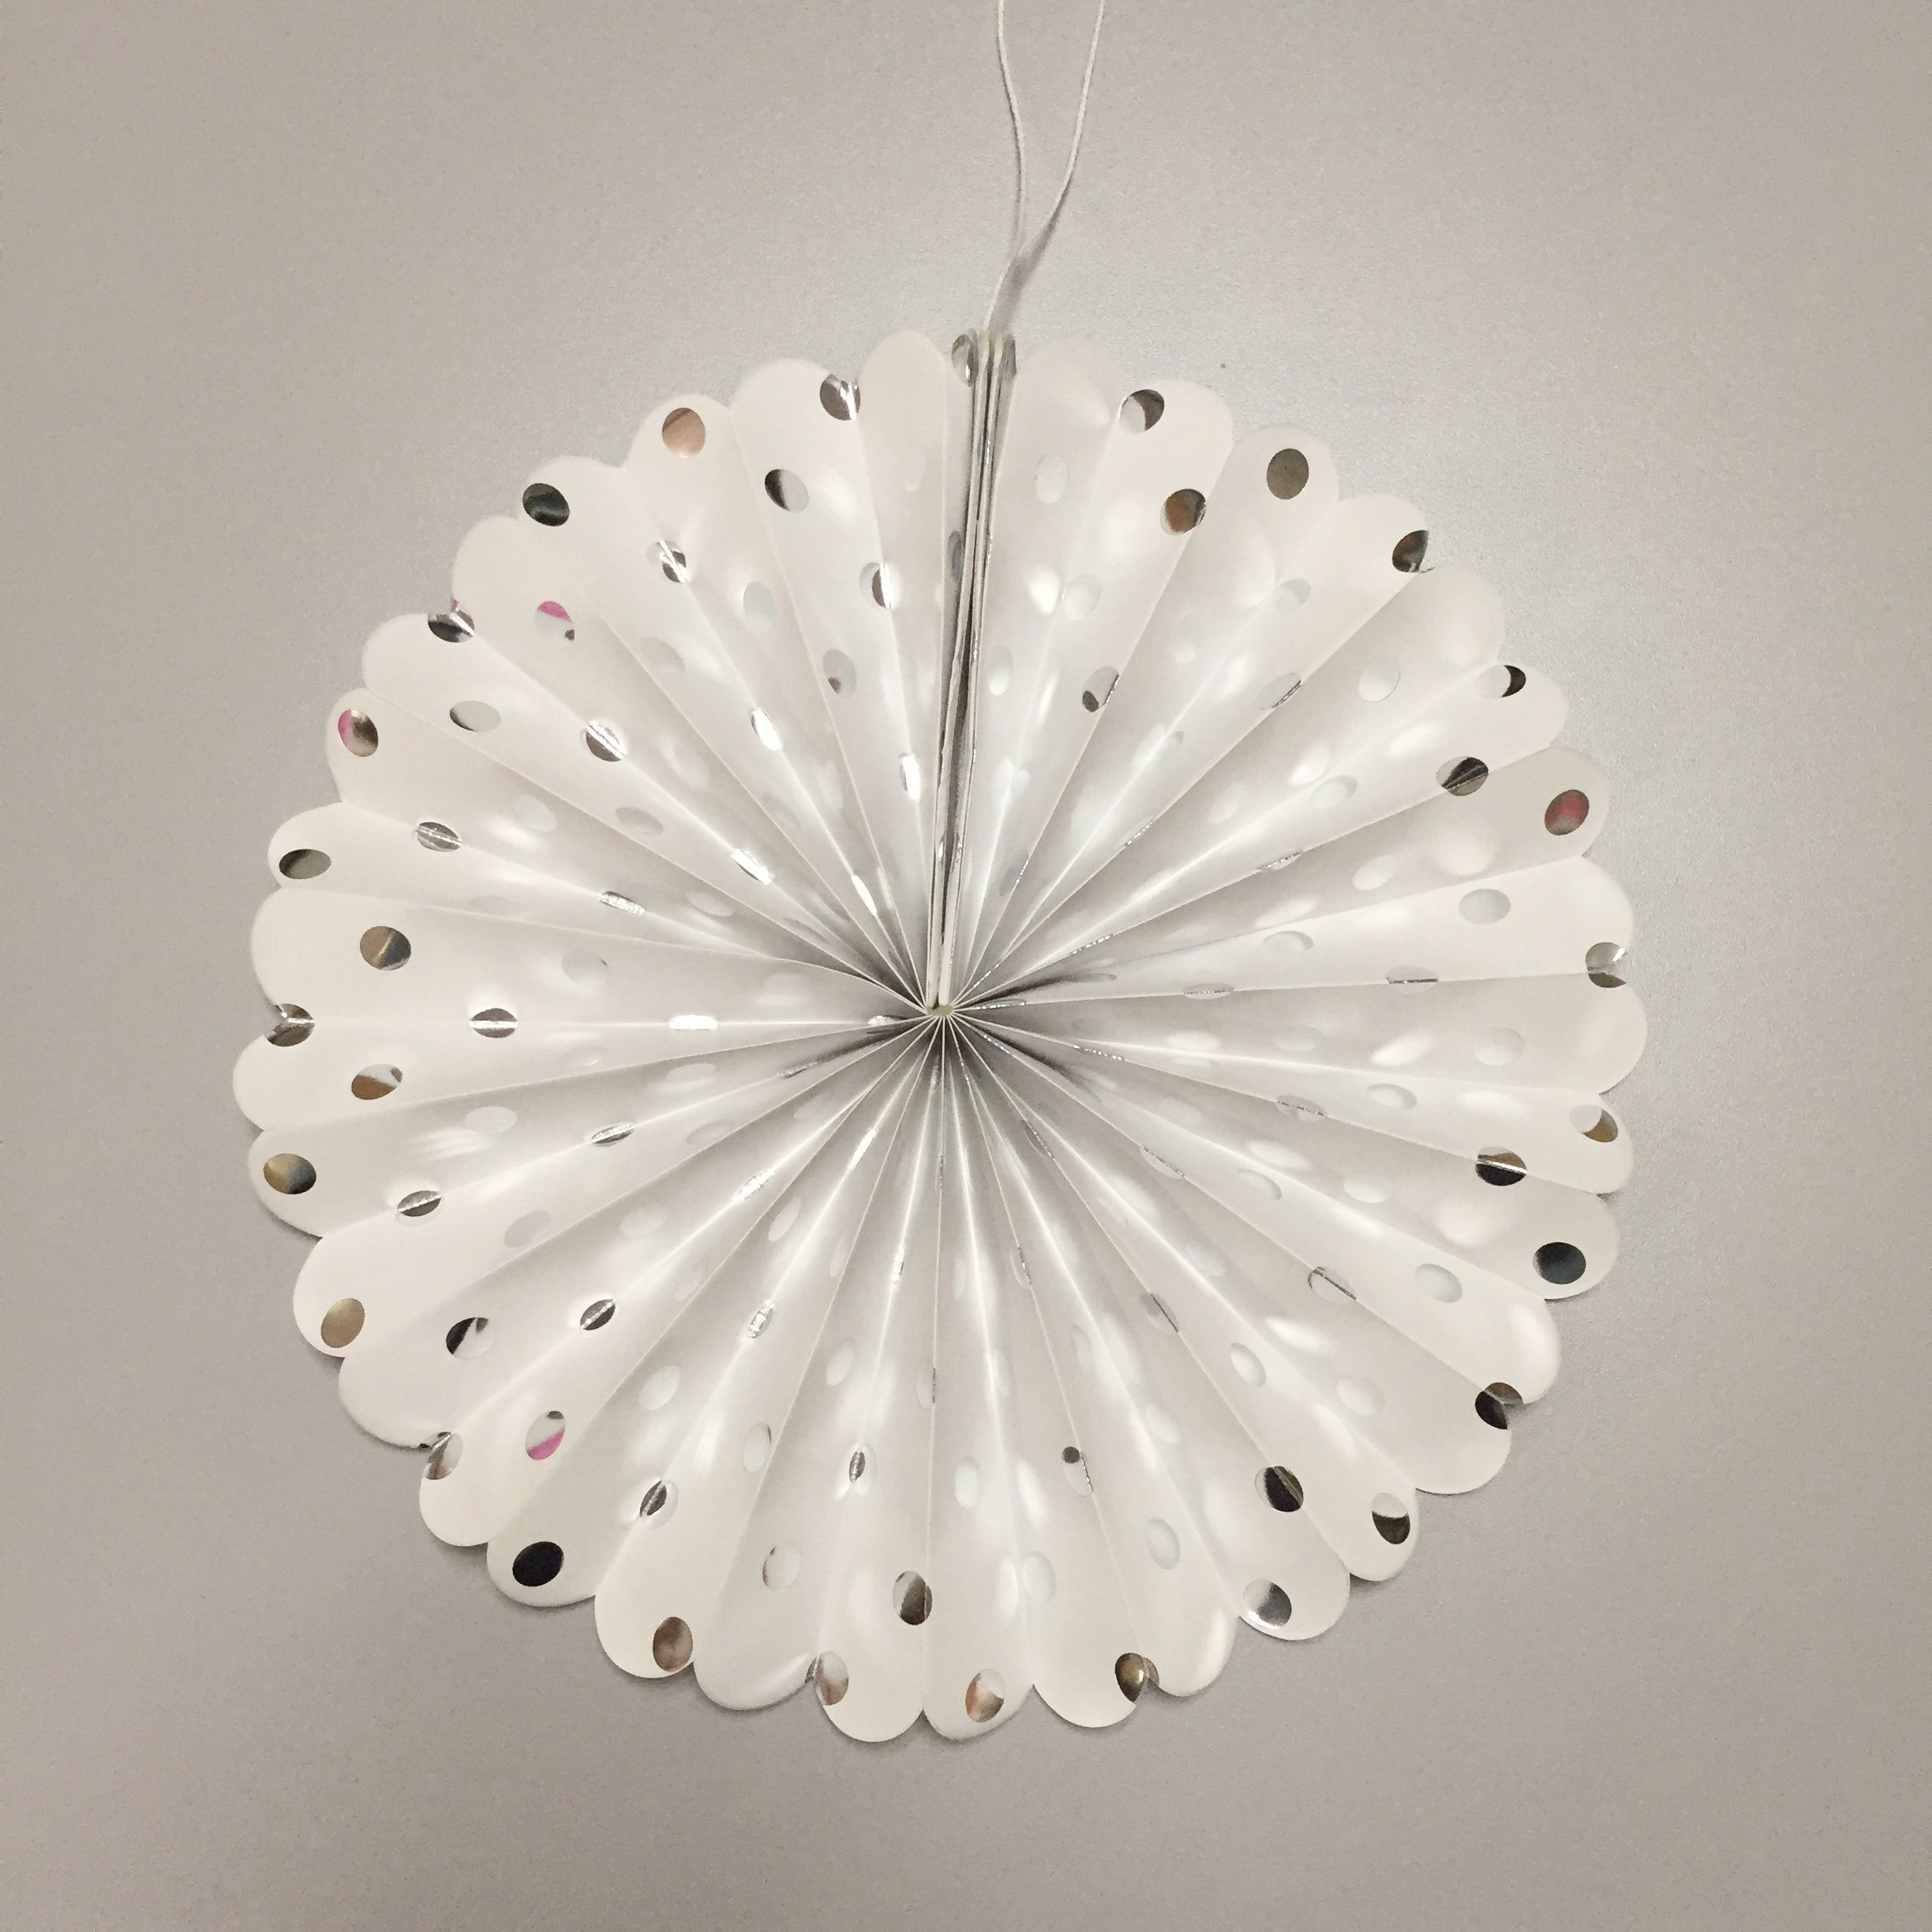 silver dotted fan for party decoration